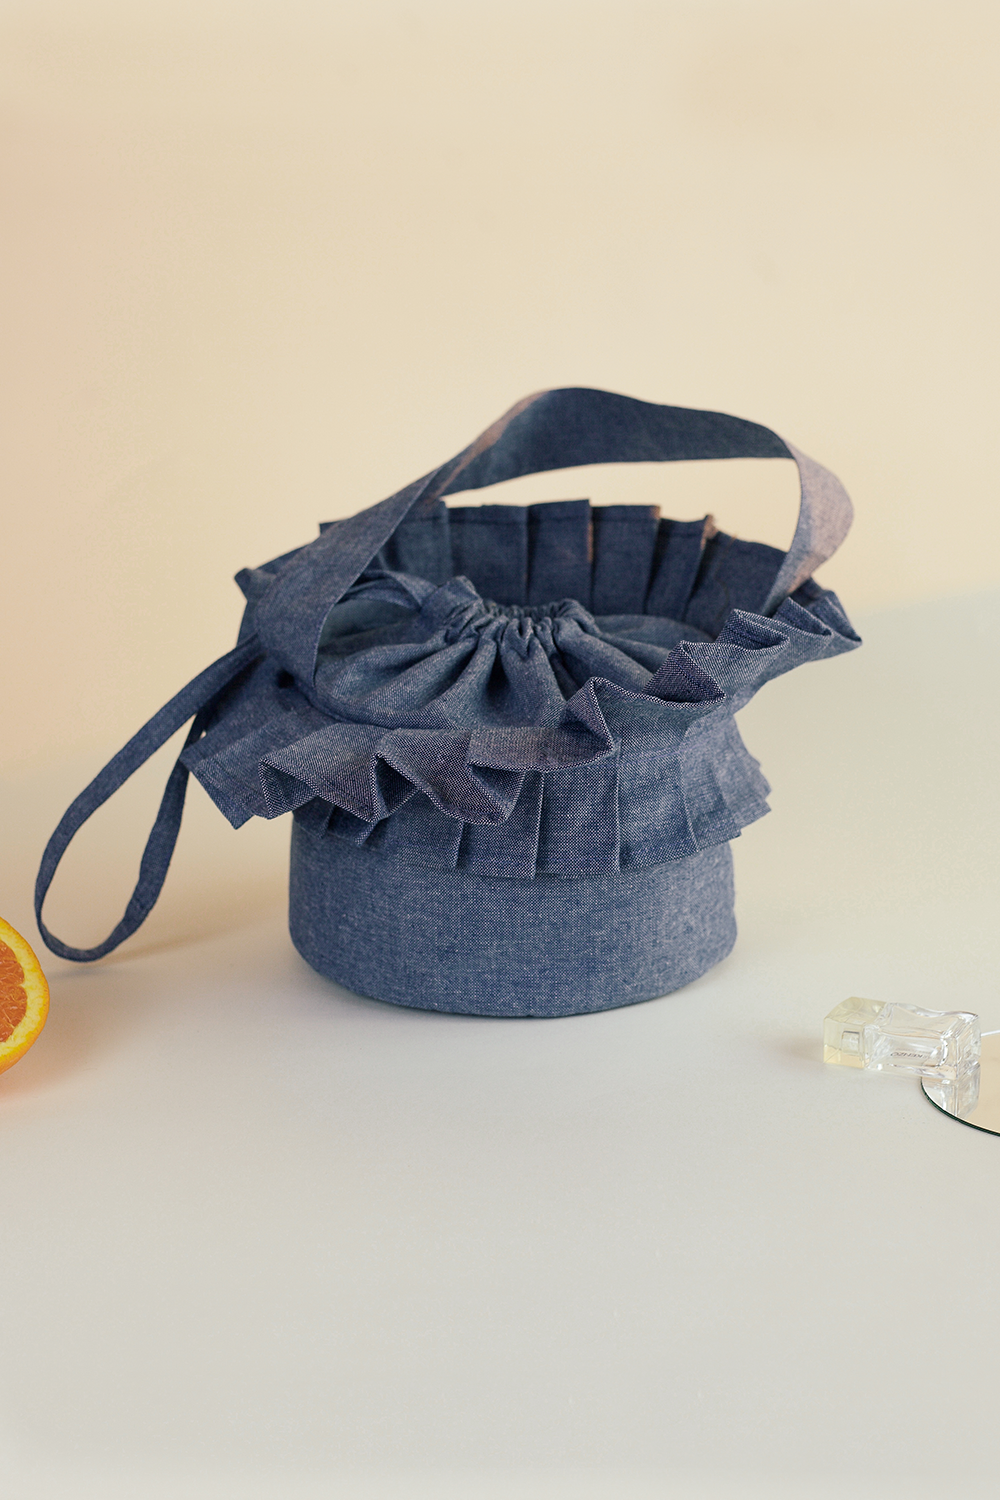 Origami lunch bag, Everyday cool objects, Refinity by Leinné, Upcycled Fabrics, Eco luxury